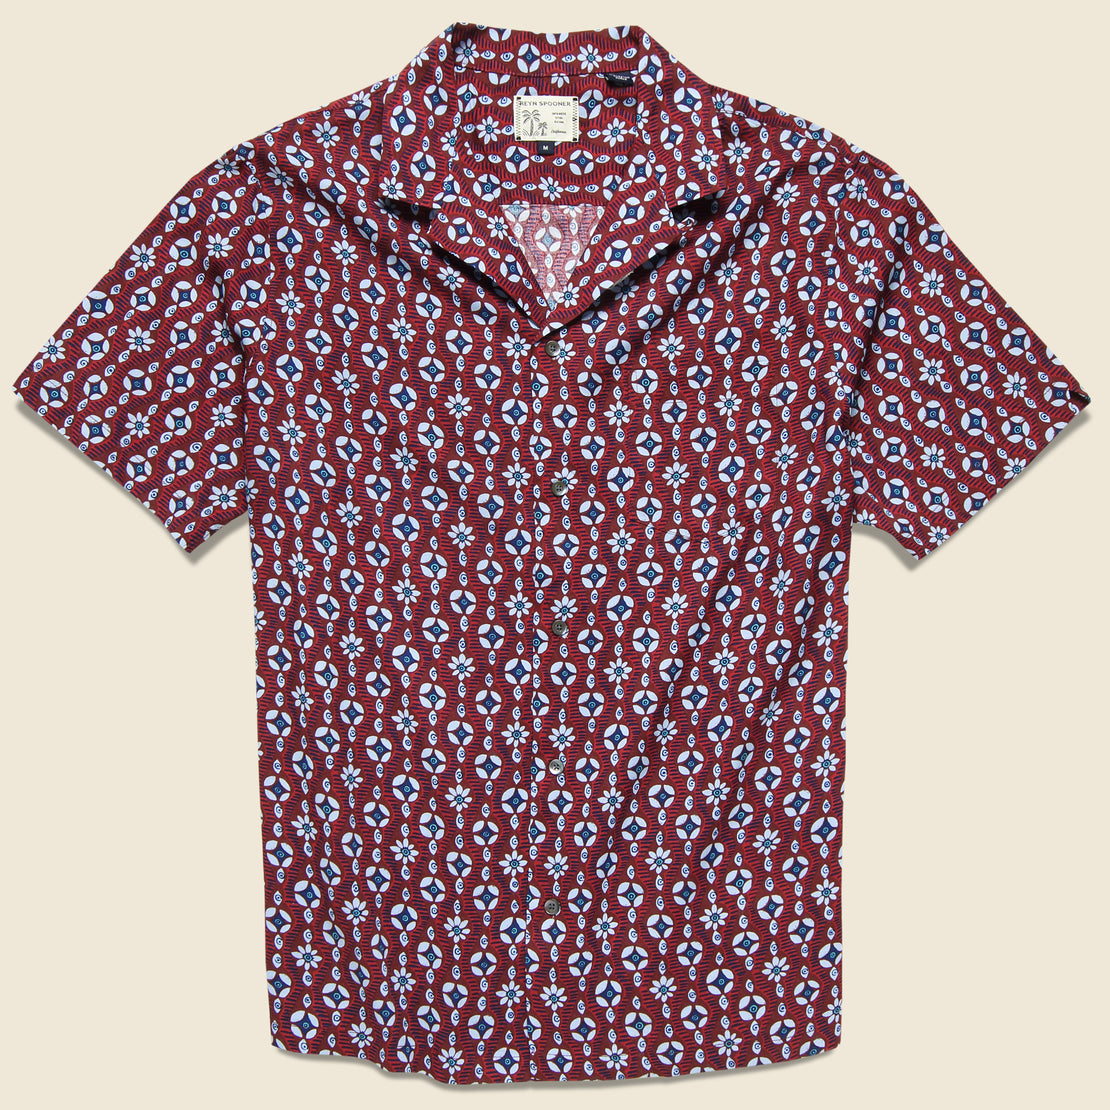 Reyn Spooner Eye See U Camp Shirt - Oxblood Red